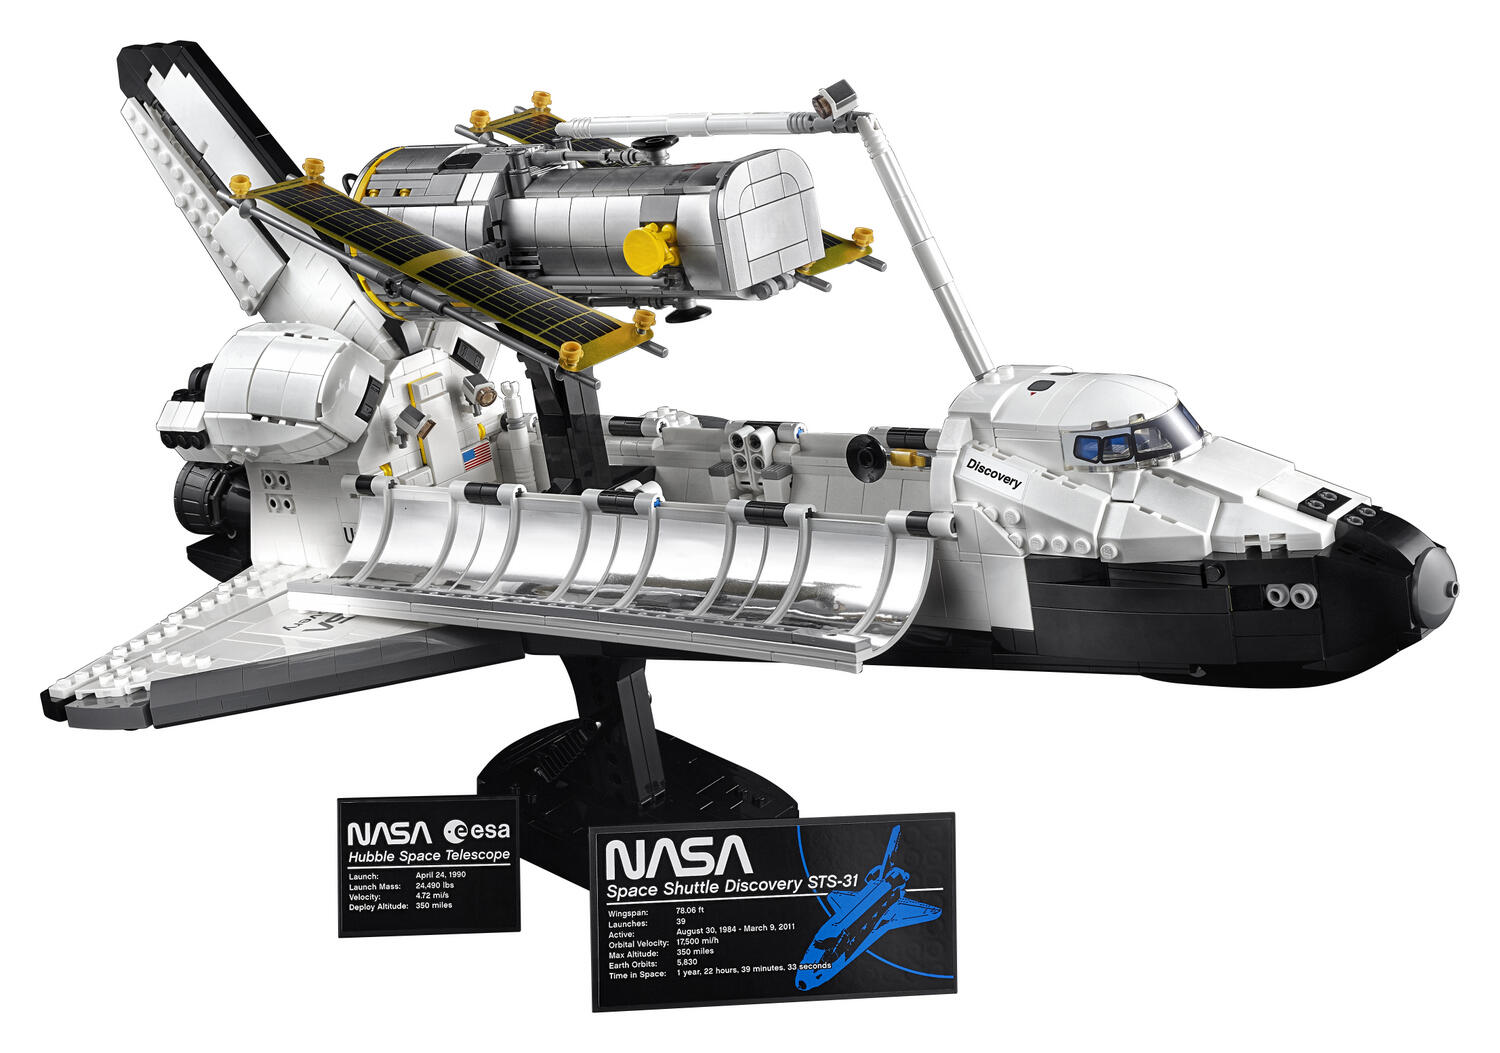 Lego model of the space shuttle Discovery and the Hubble Space Telescope